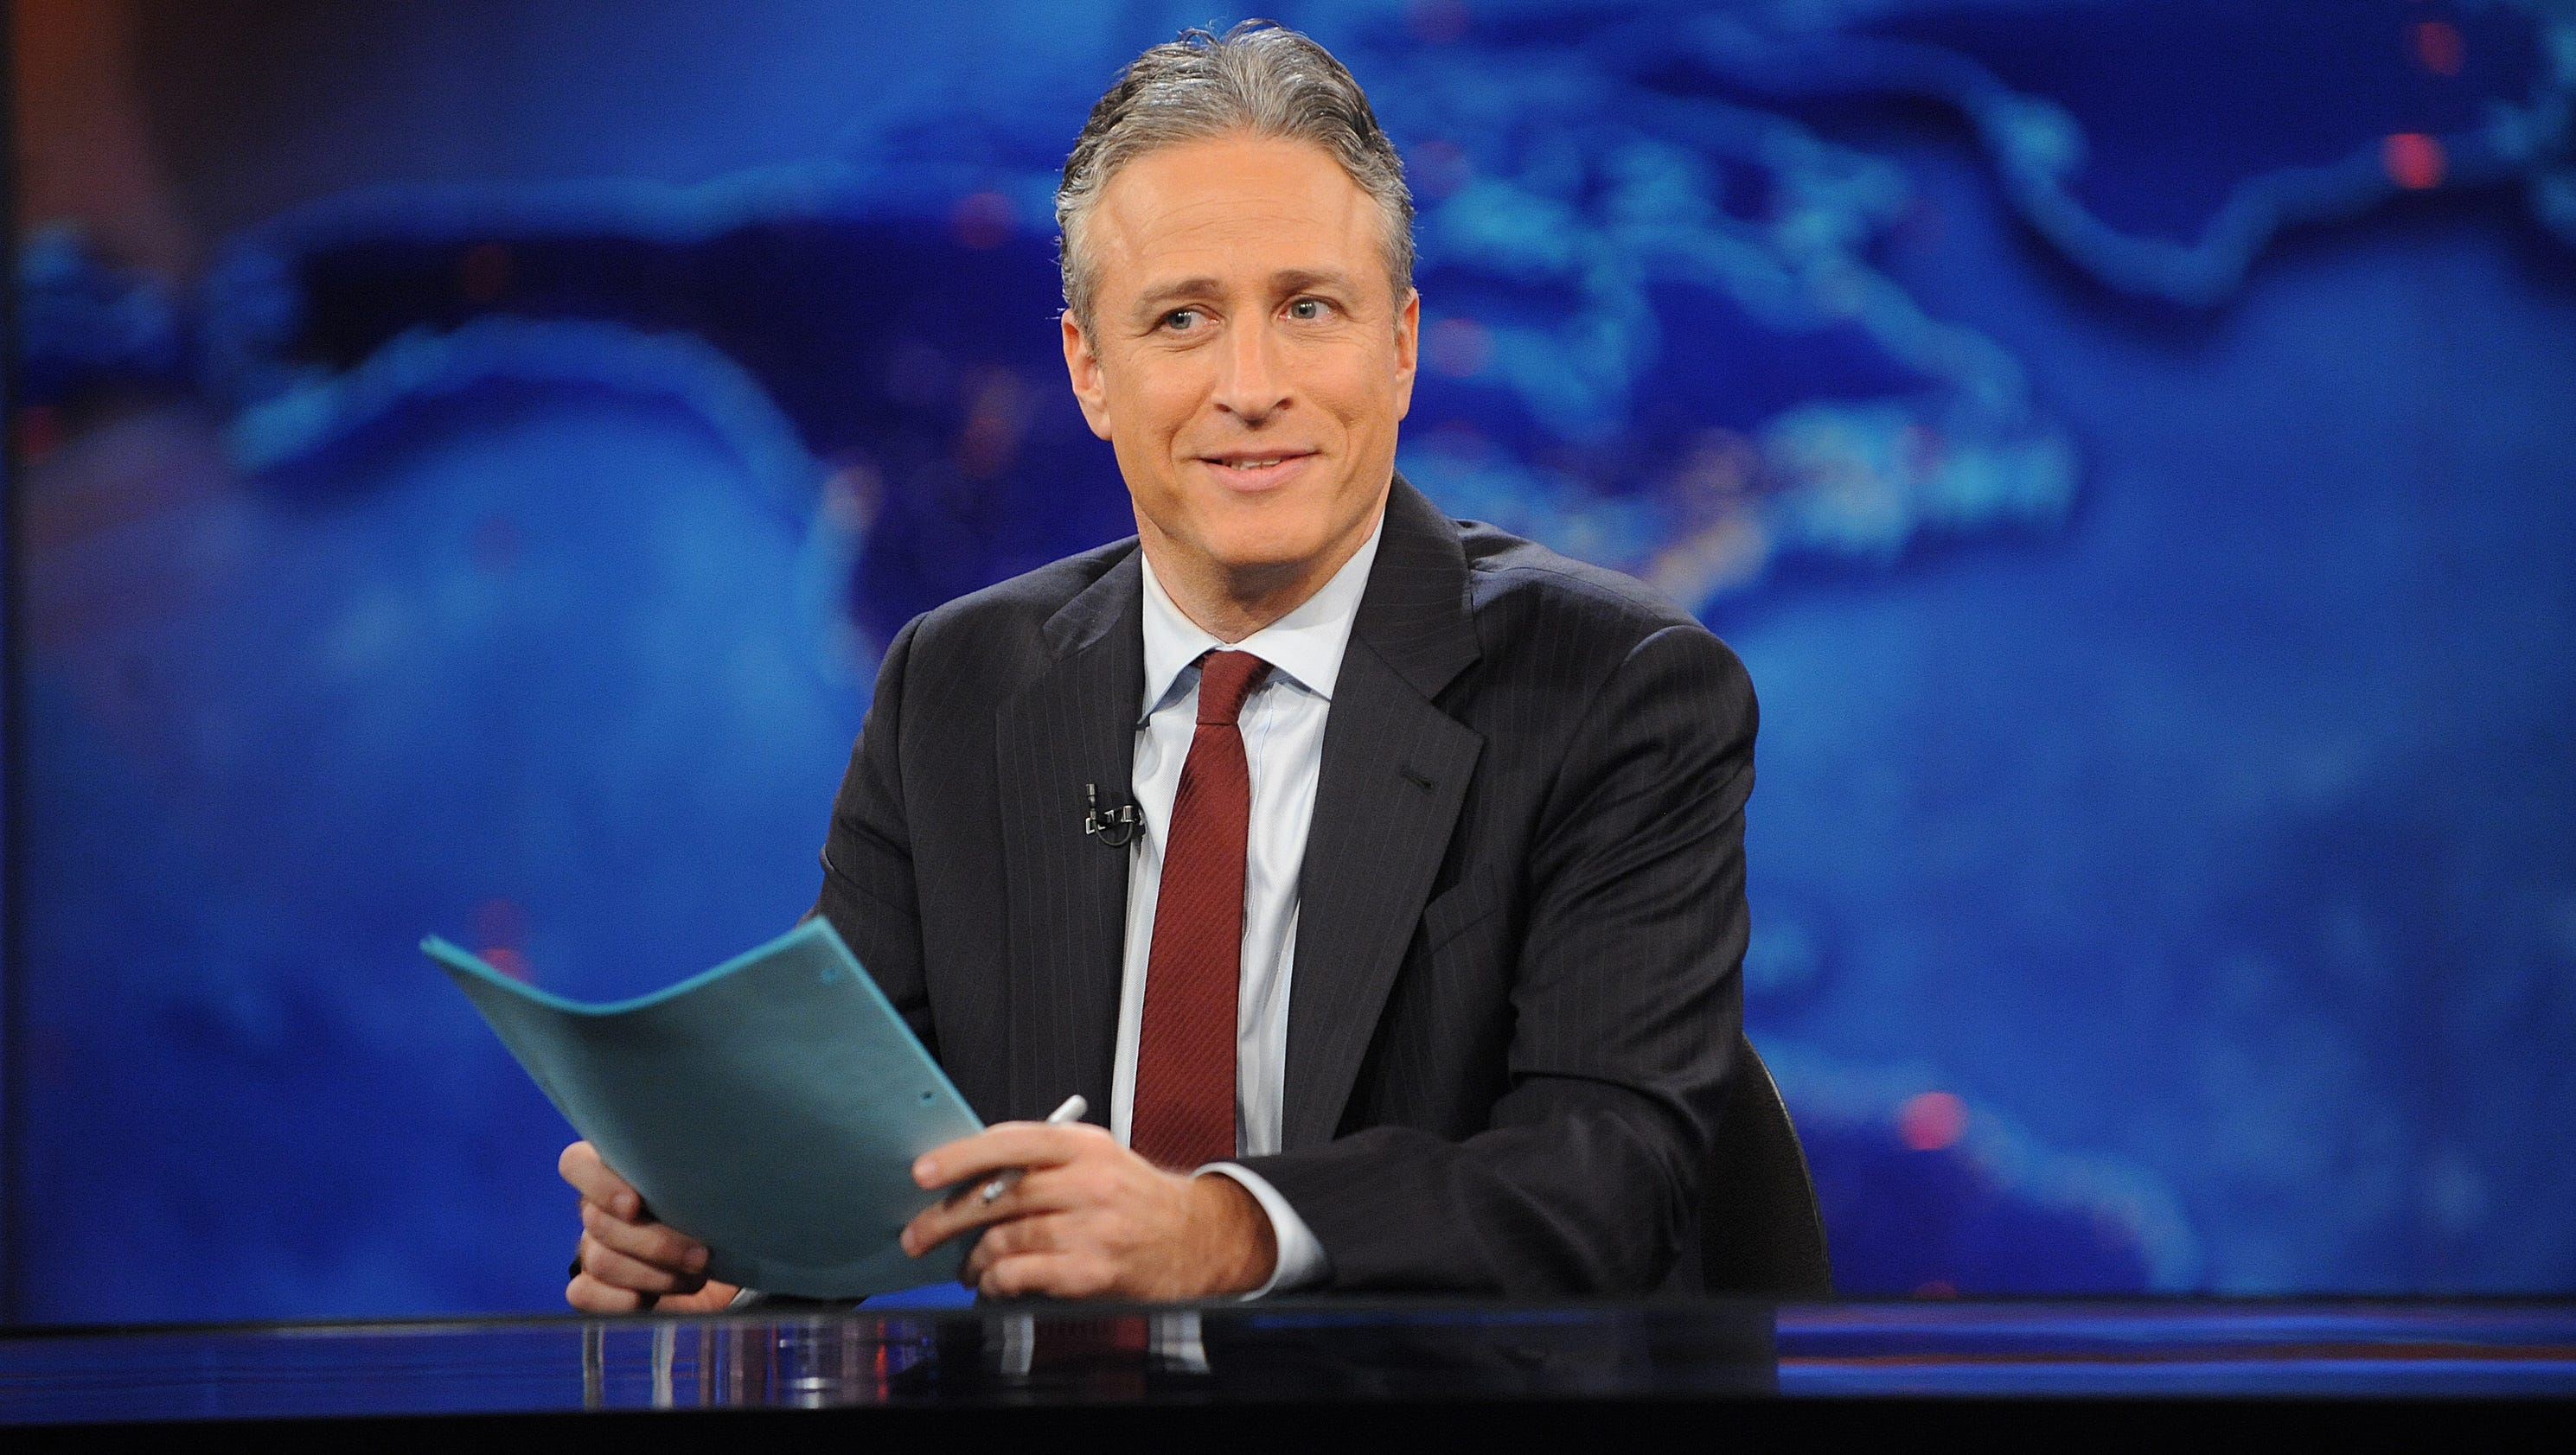 Jon Stewart returns to 'The Daily Show' to shame Congress